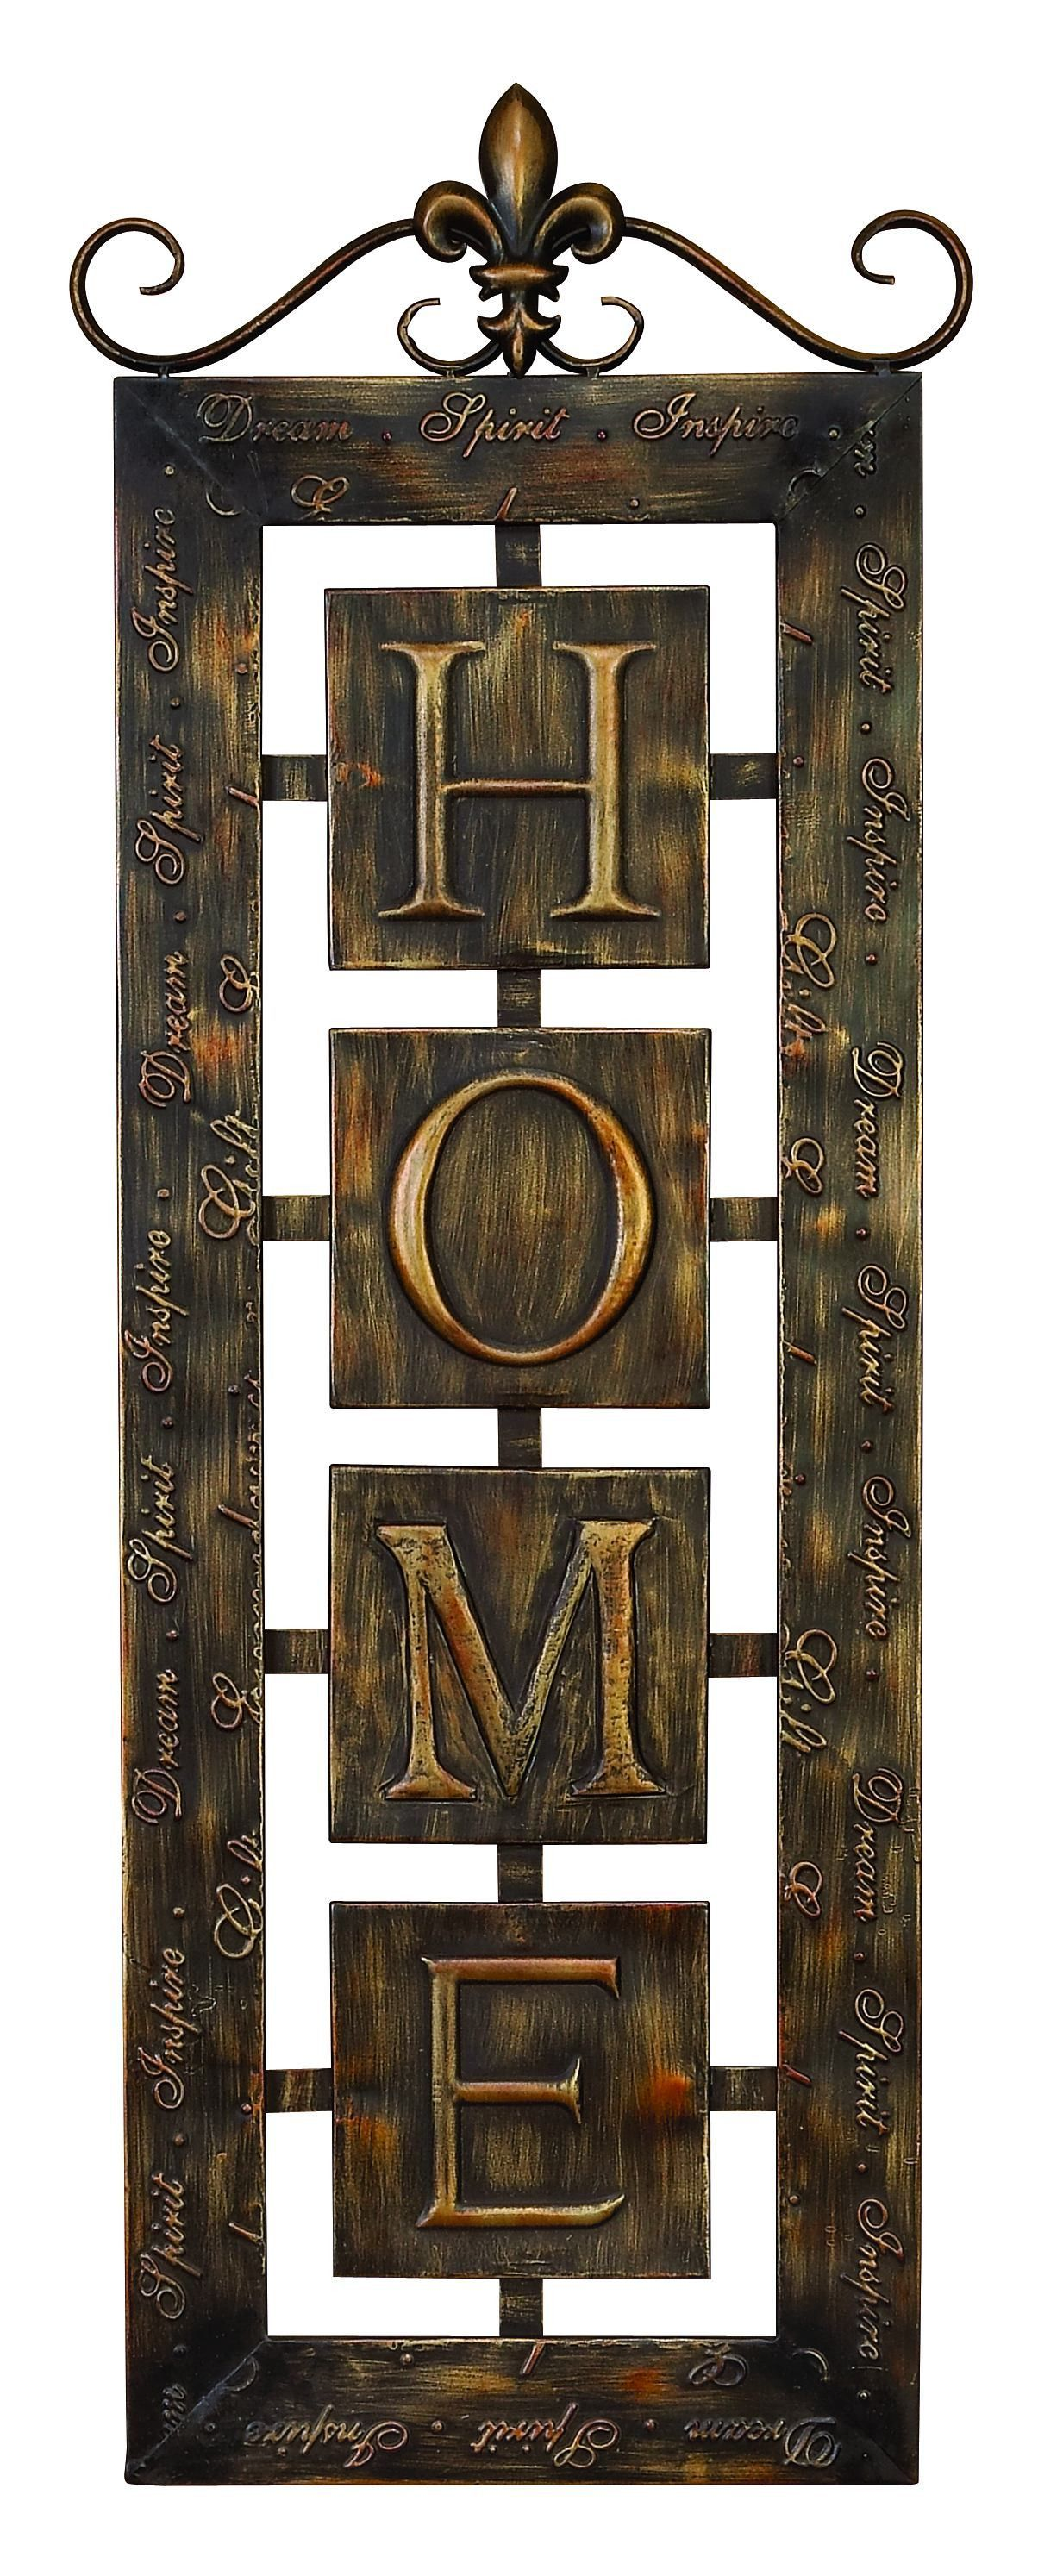 Intimate uhomeu wall plaque metals products and décor